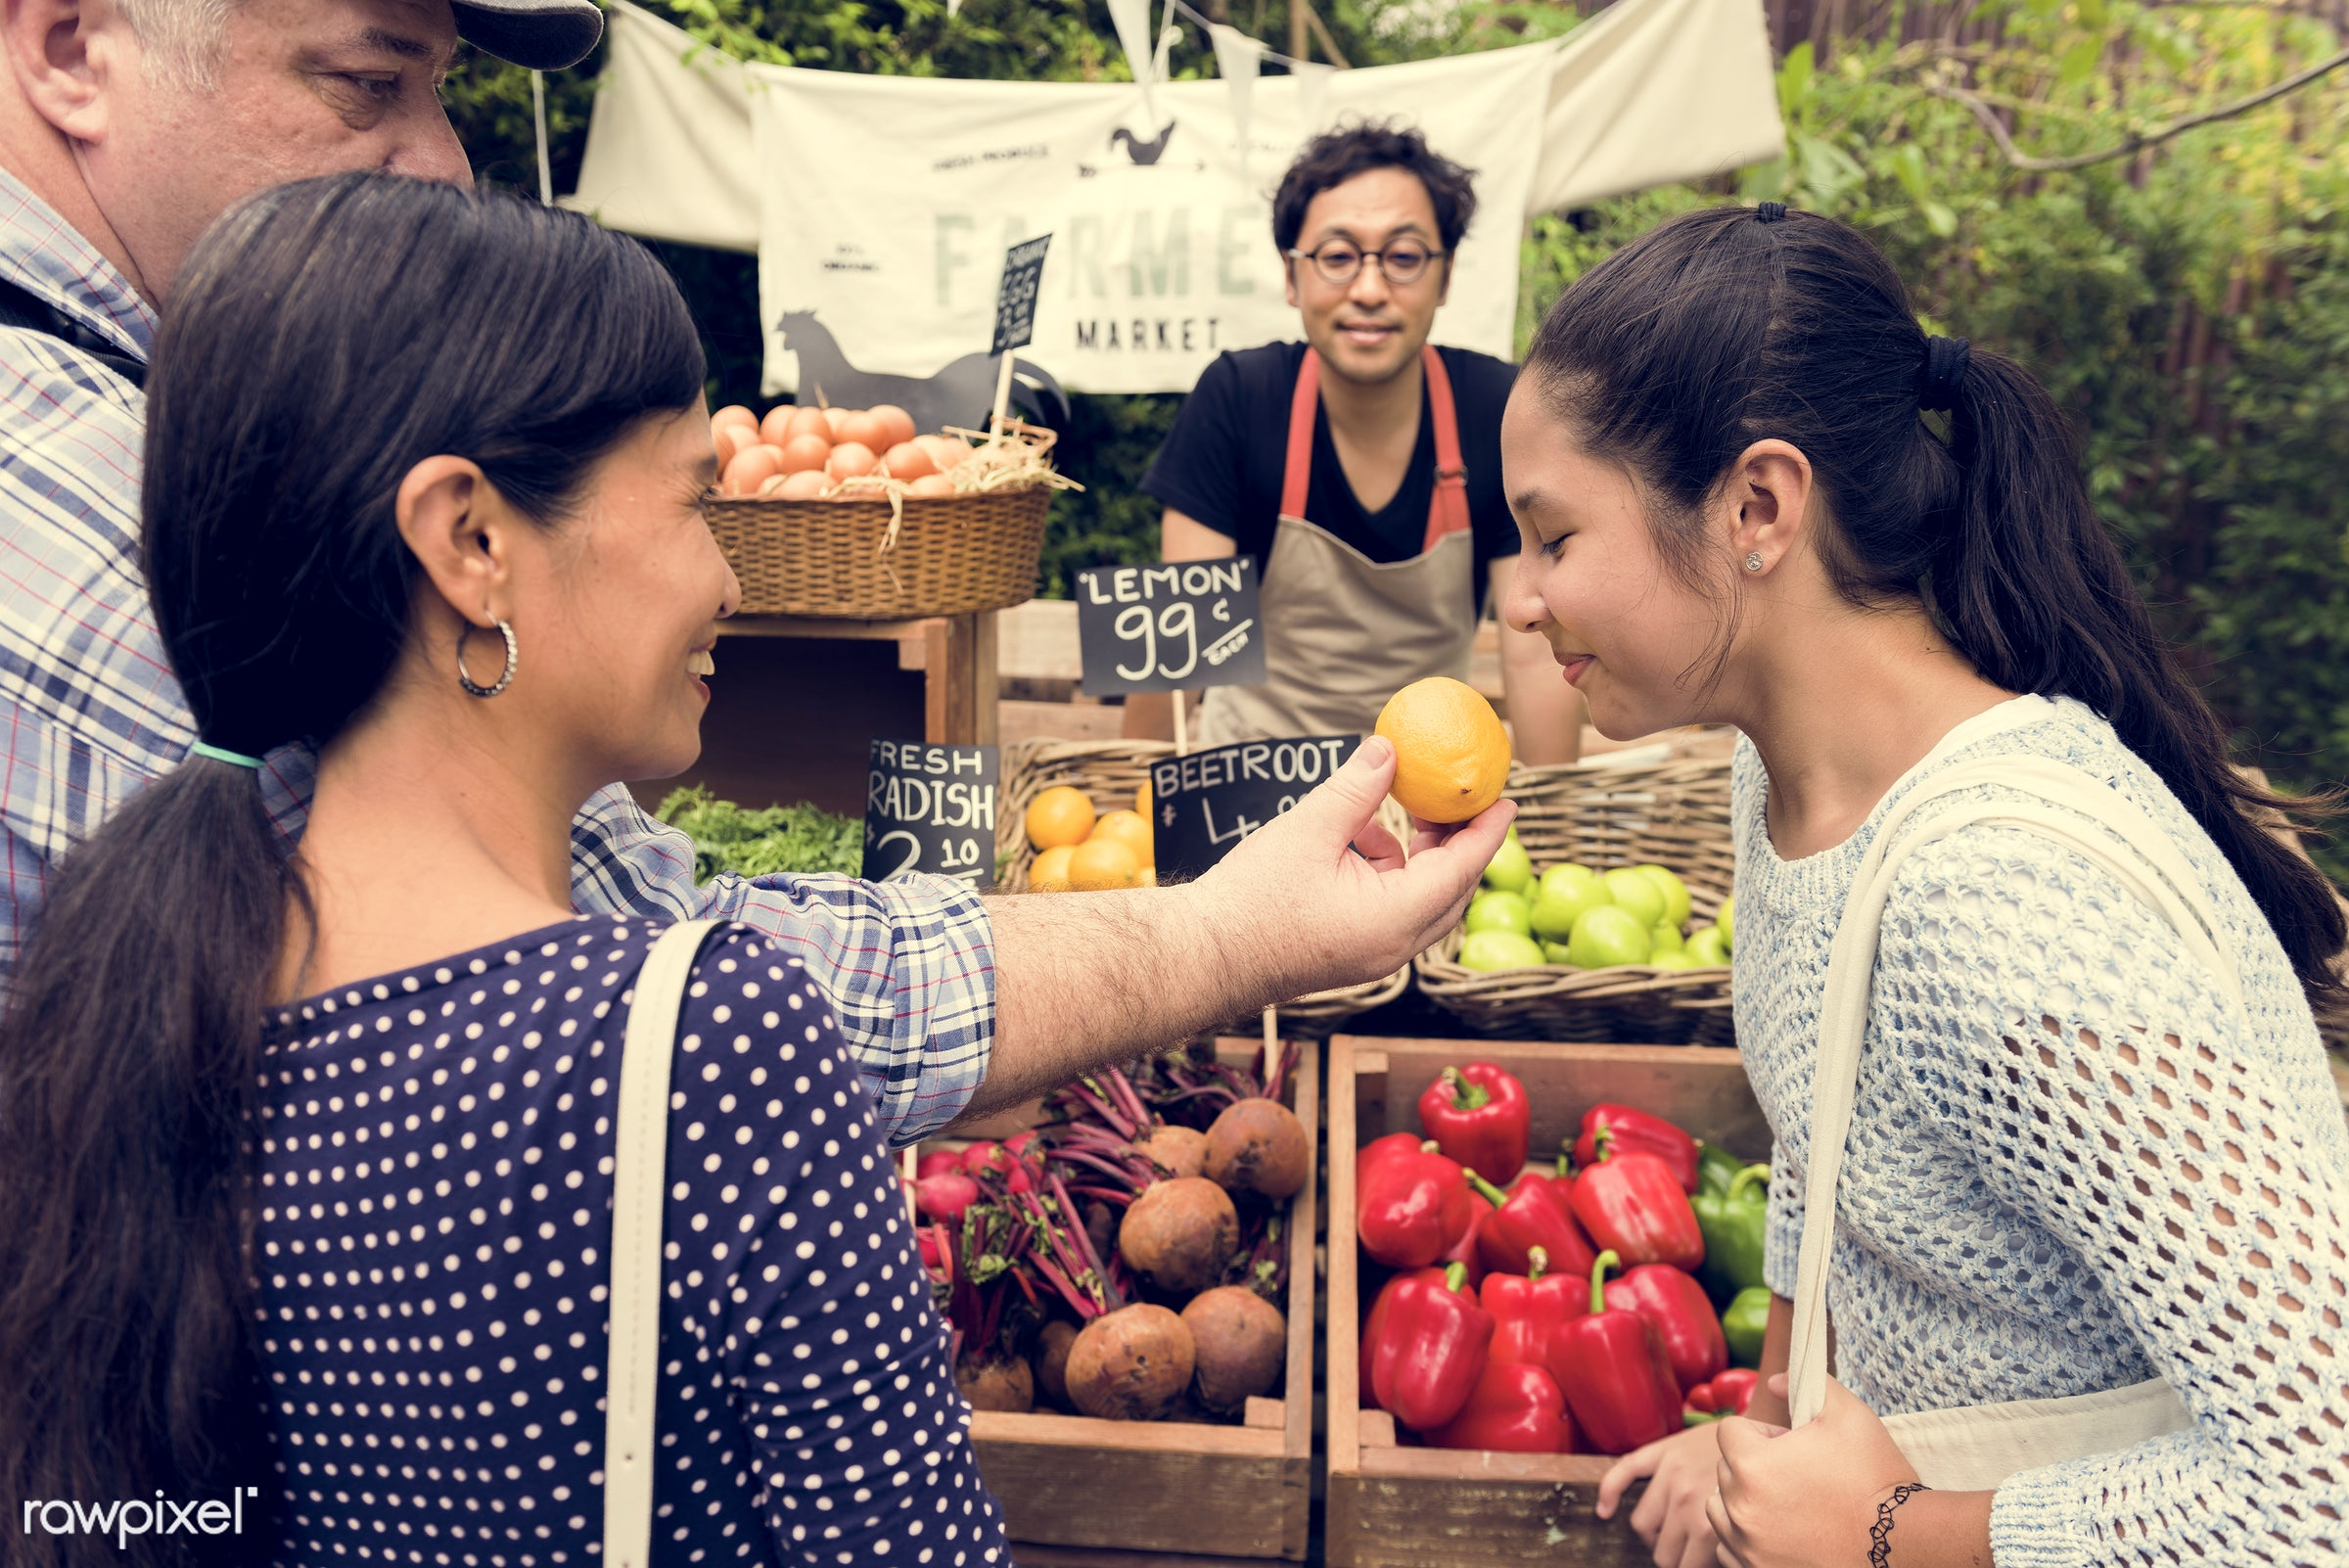 grocery, person, store, stall, people, lifestyle, smiling, fruit, selling, health, nutrition, market, gardener, food, owner...